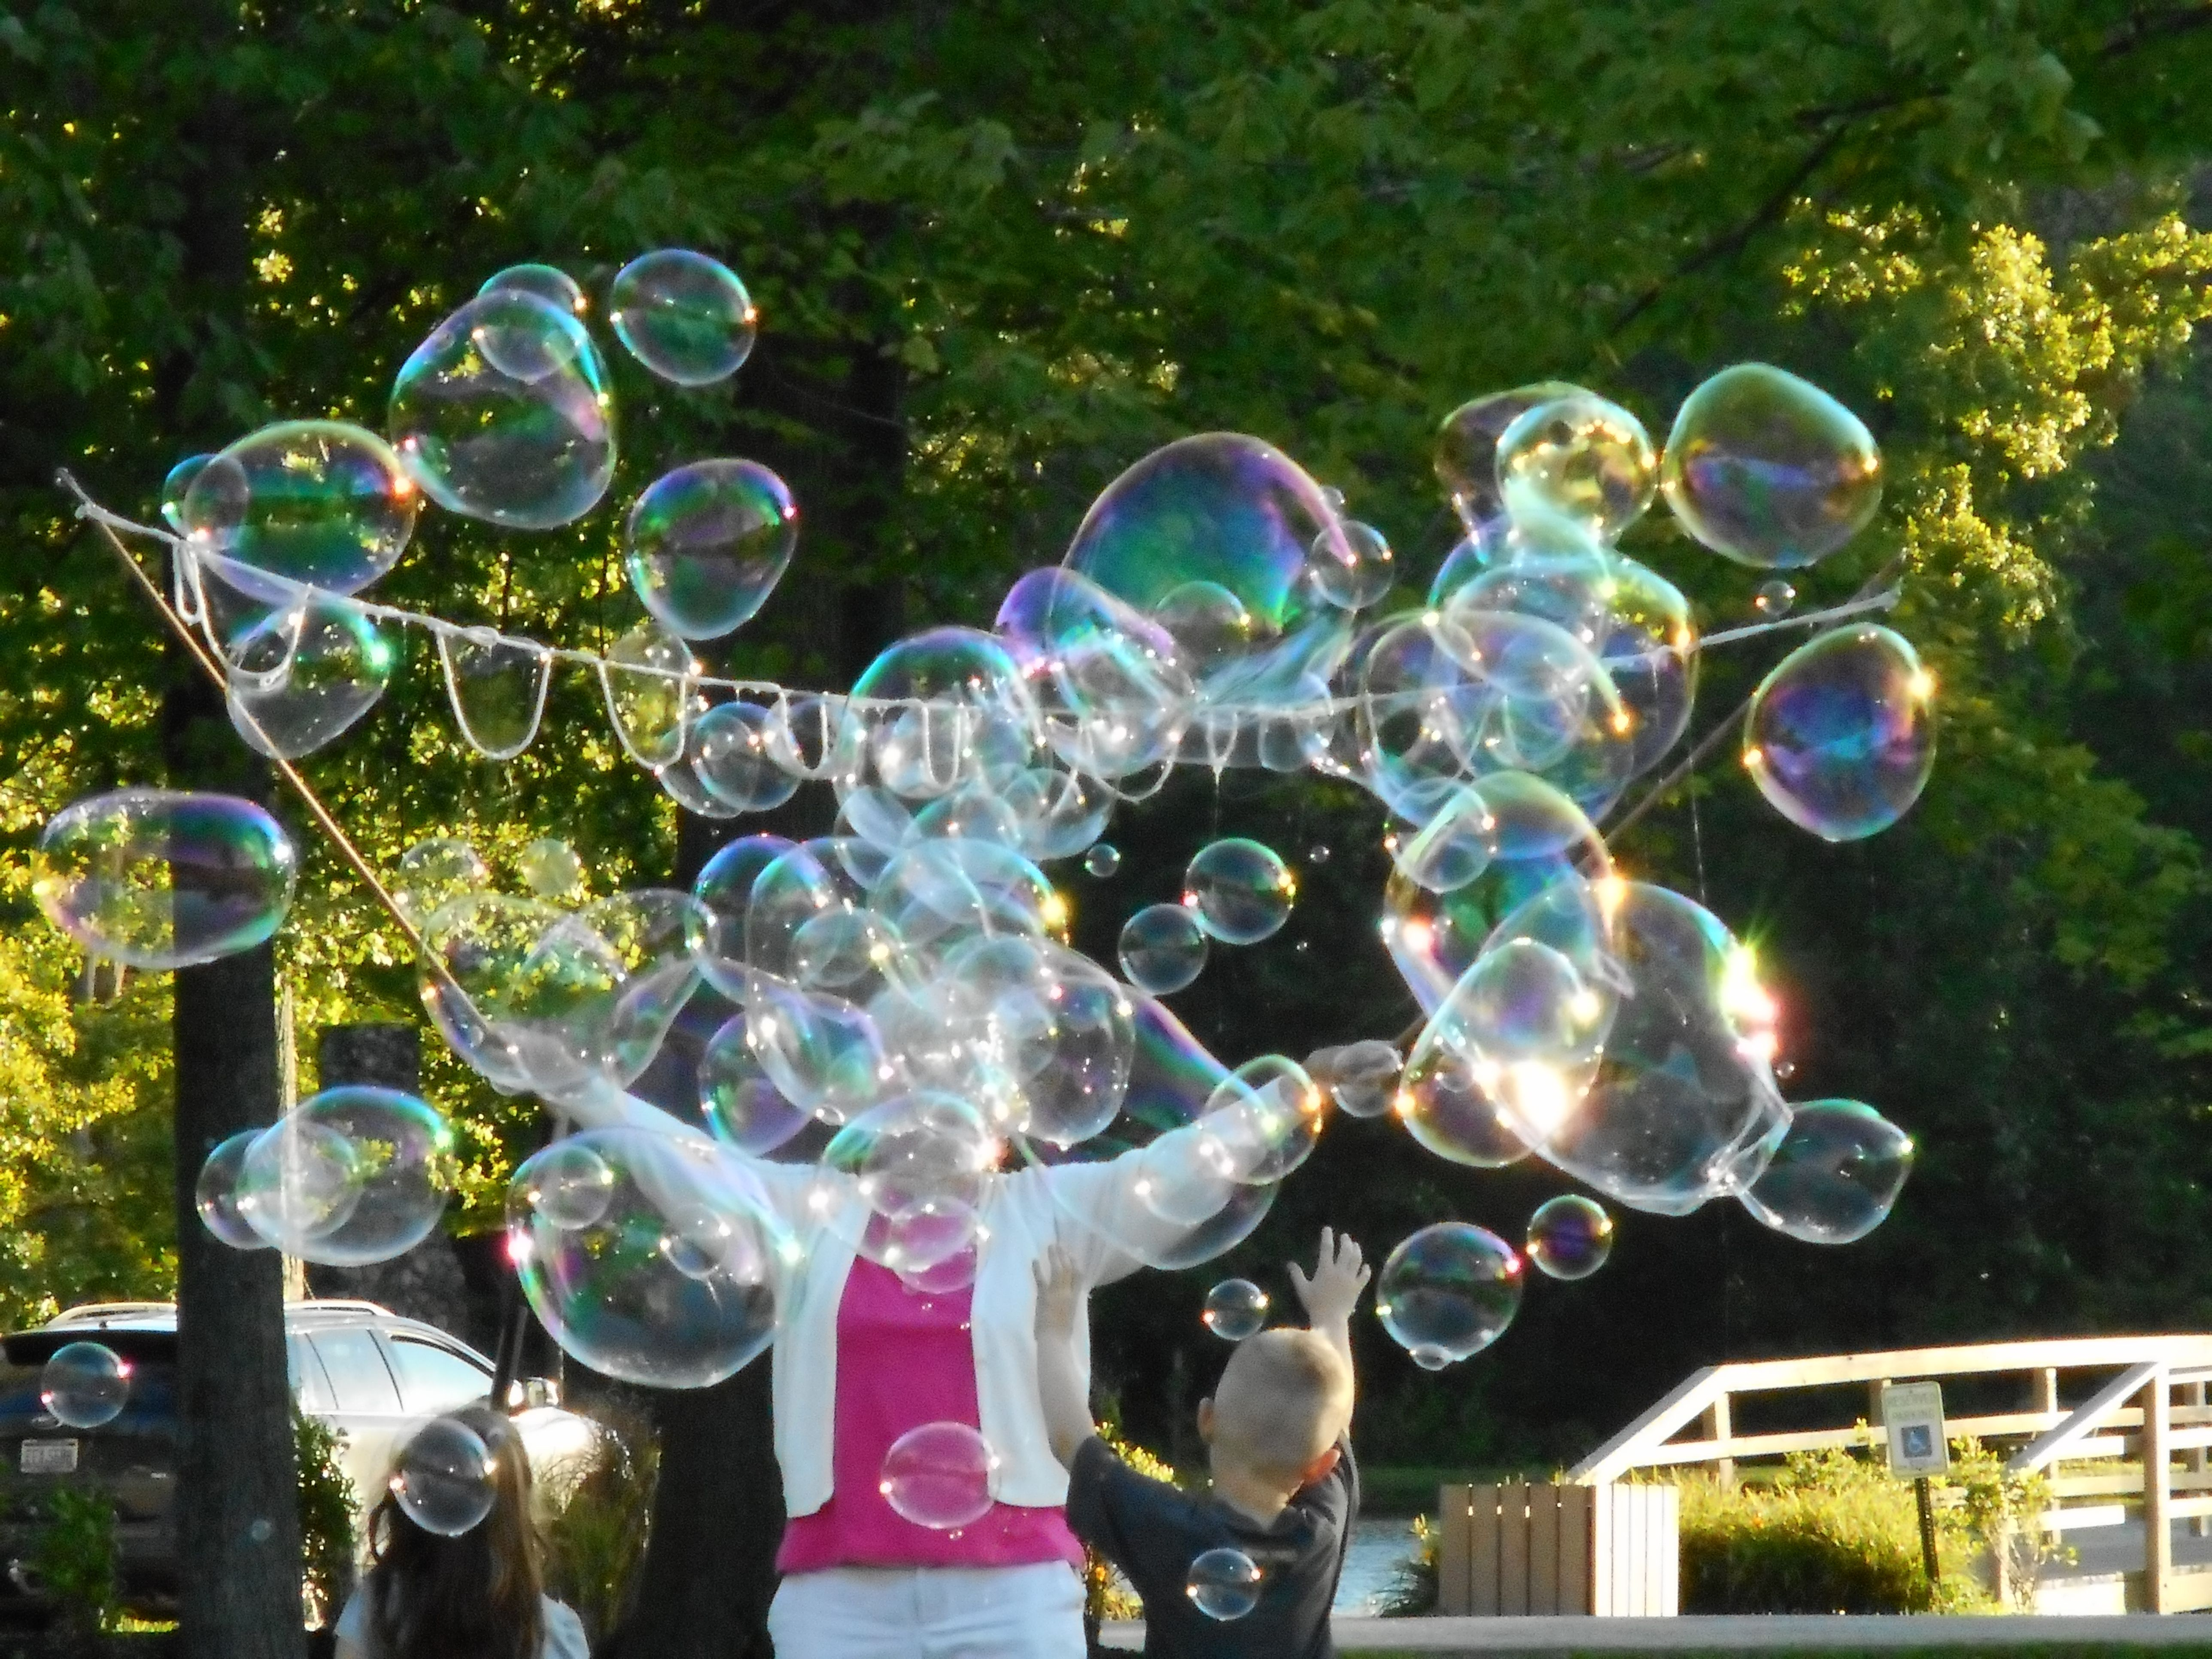 How To Make An Easy Diy Giant Bubble Wand Keep The Kids Amused